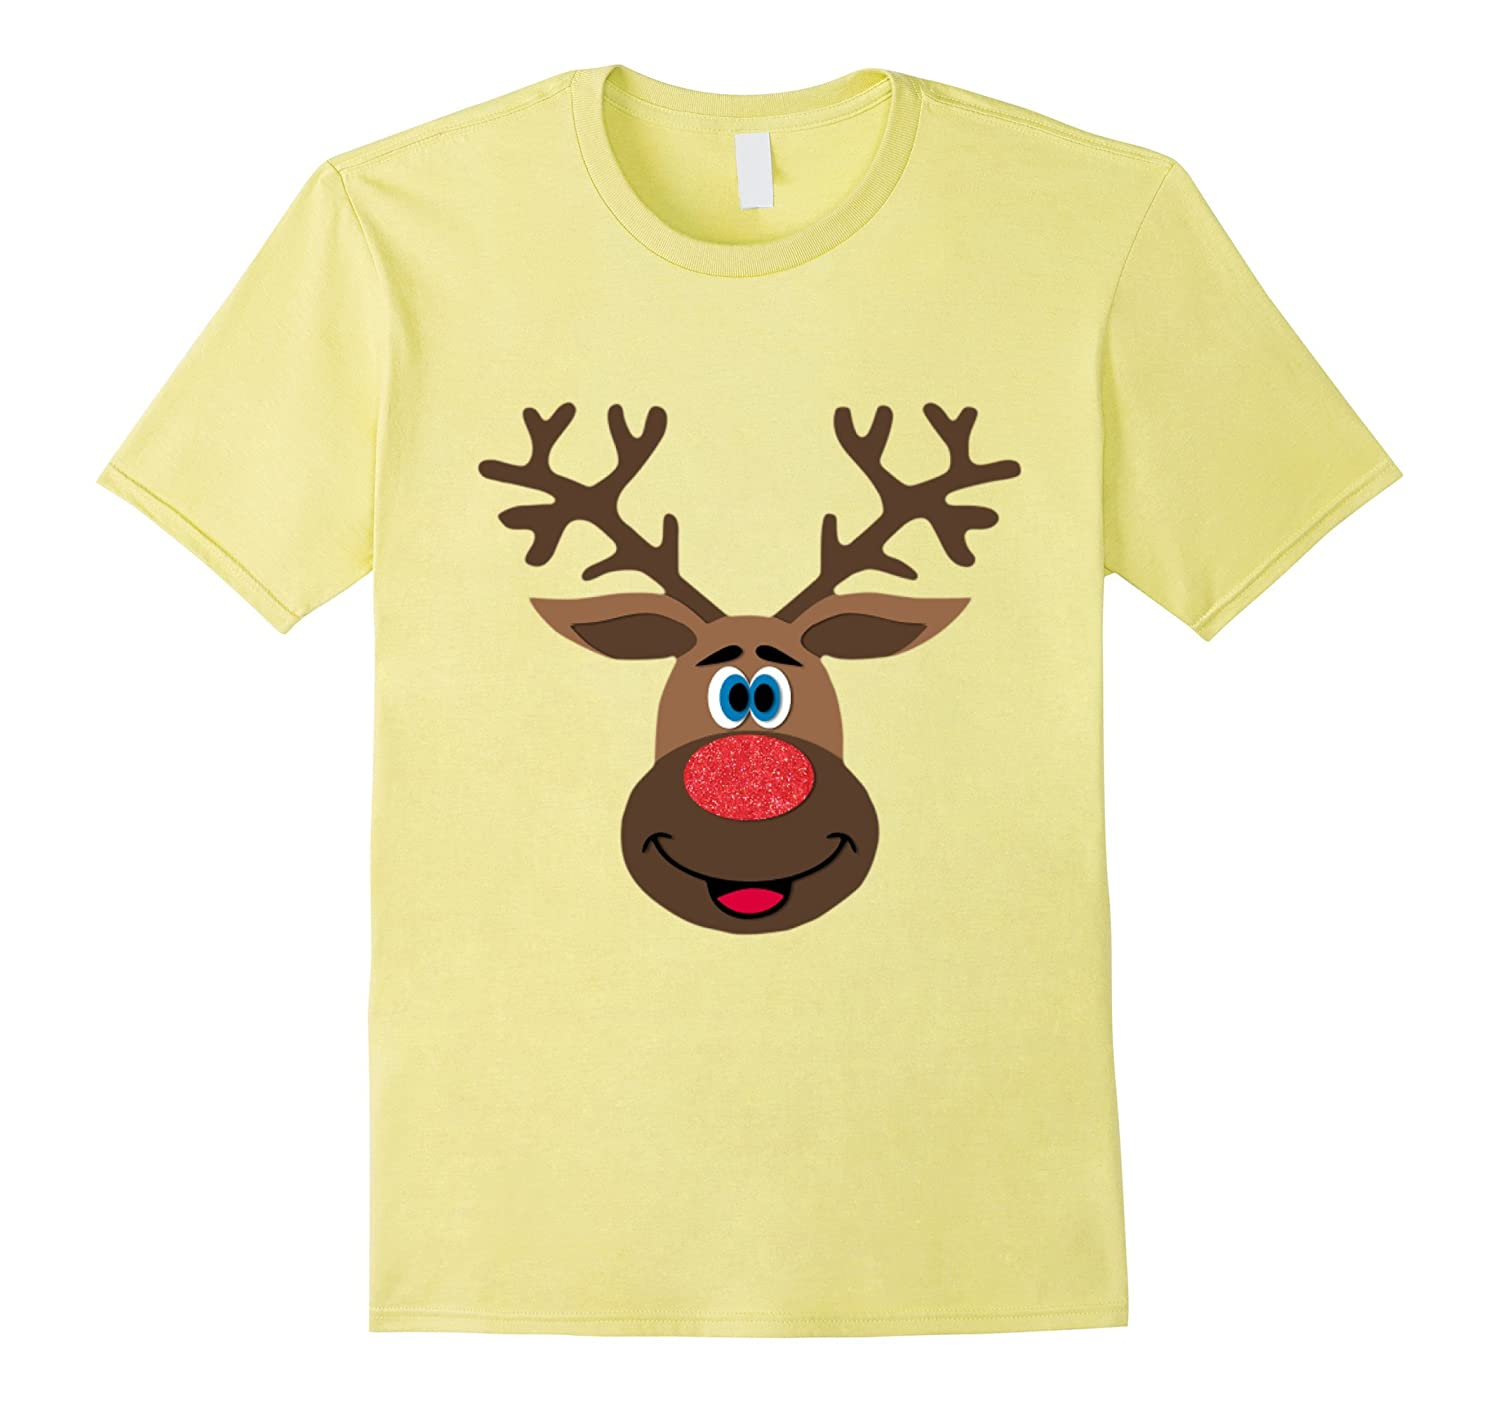 Reindeer Antlers Shirt Family Matching t-shirt Group Photo-CL